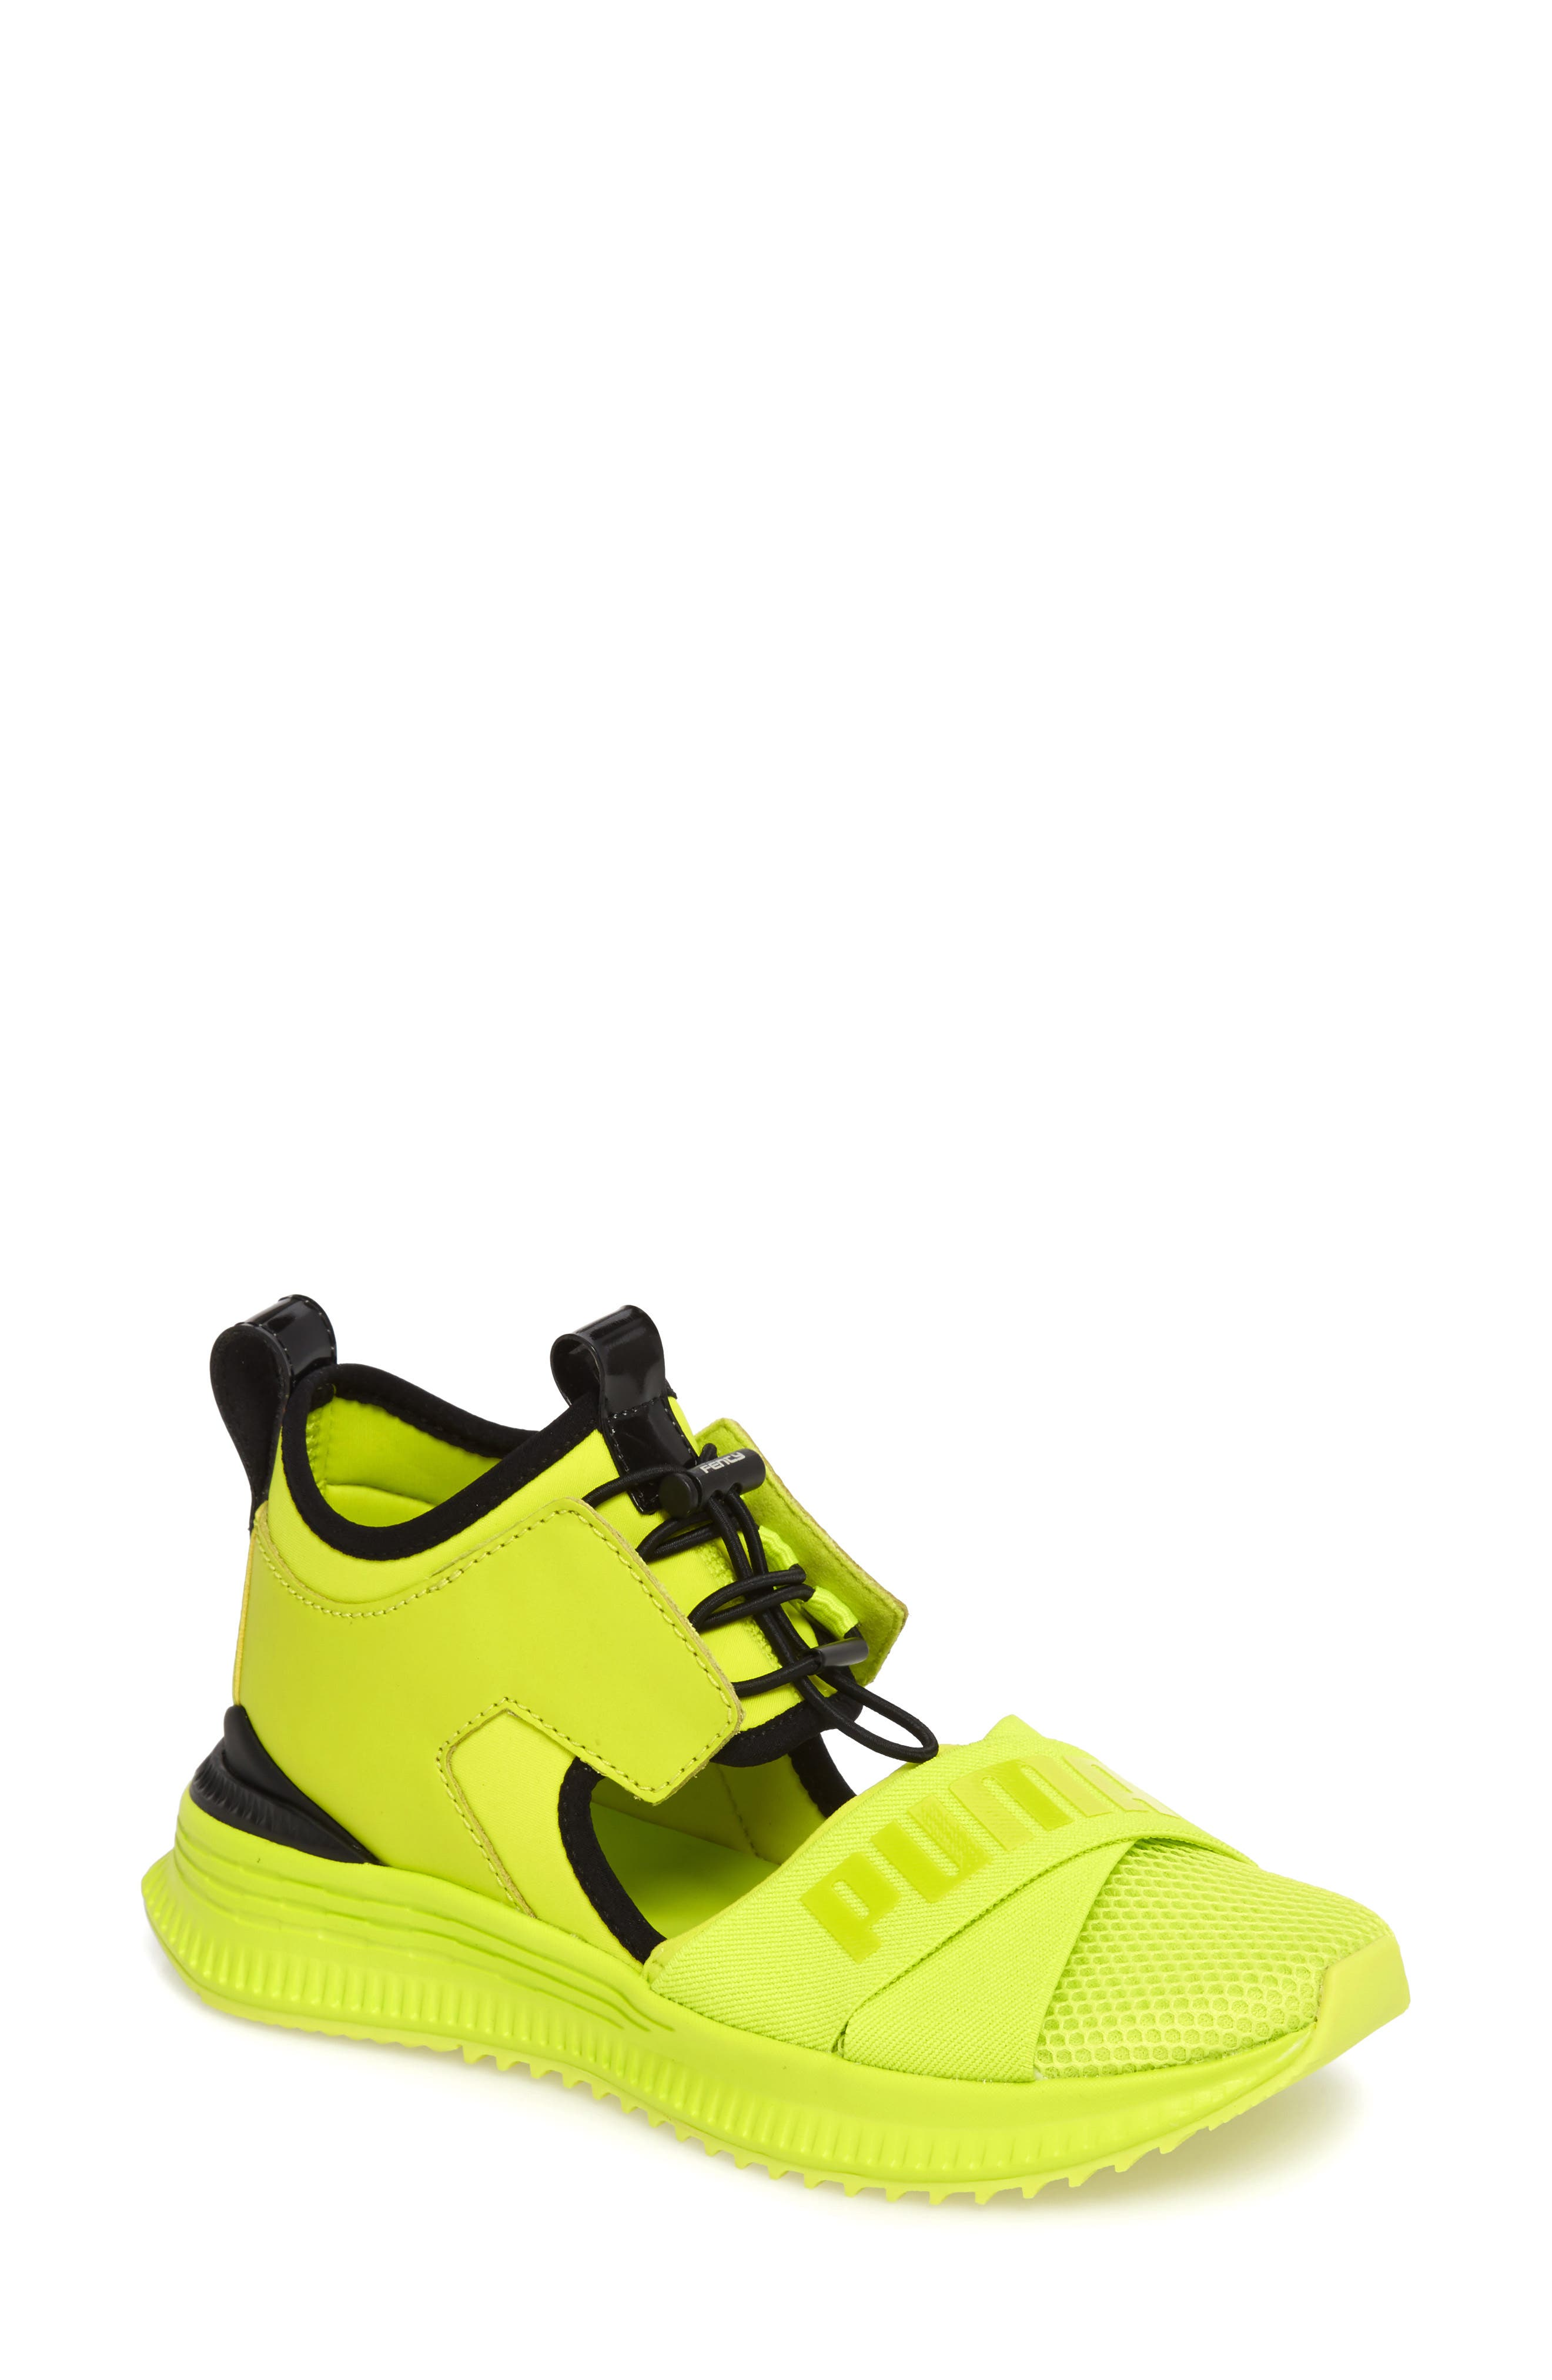 FENTY PUMA by Rihanna Avid Sneaker,                         Main,                         color, Lime Punch/ Black/ Lime Punch